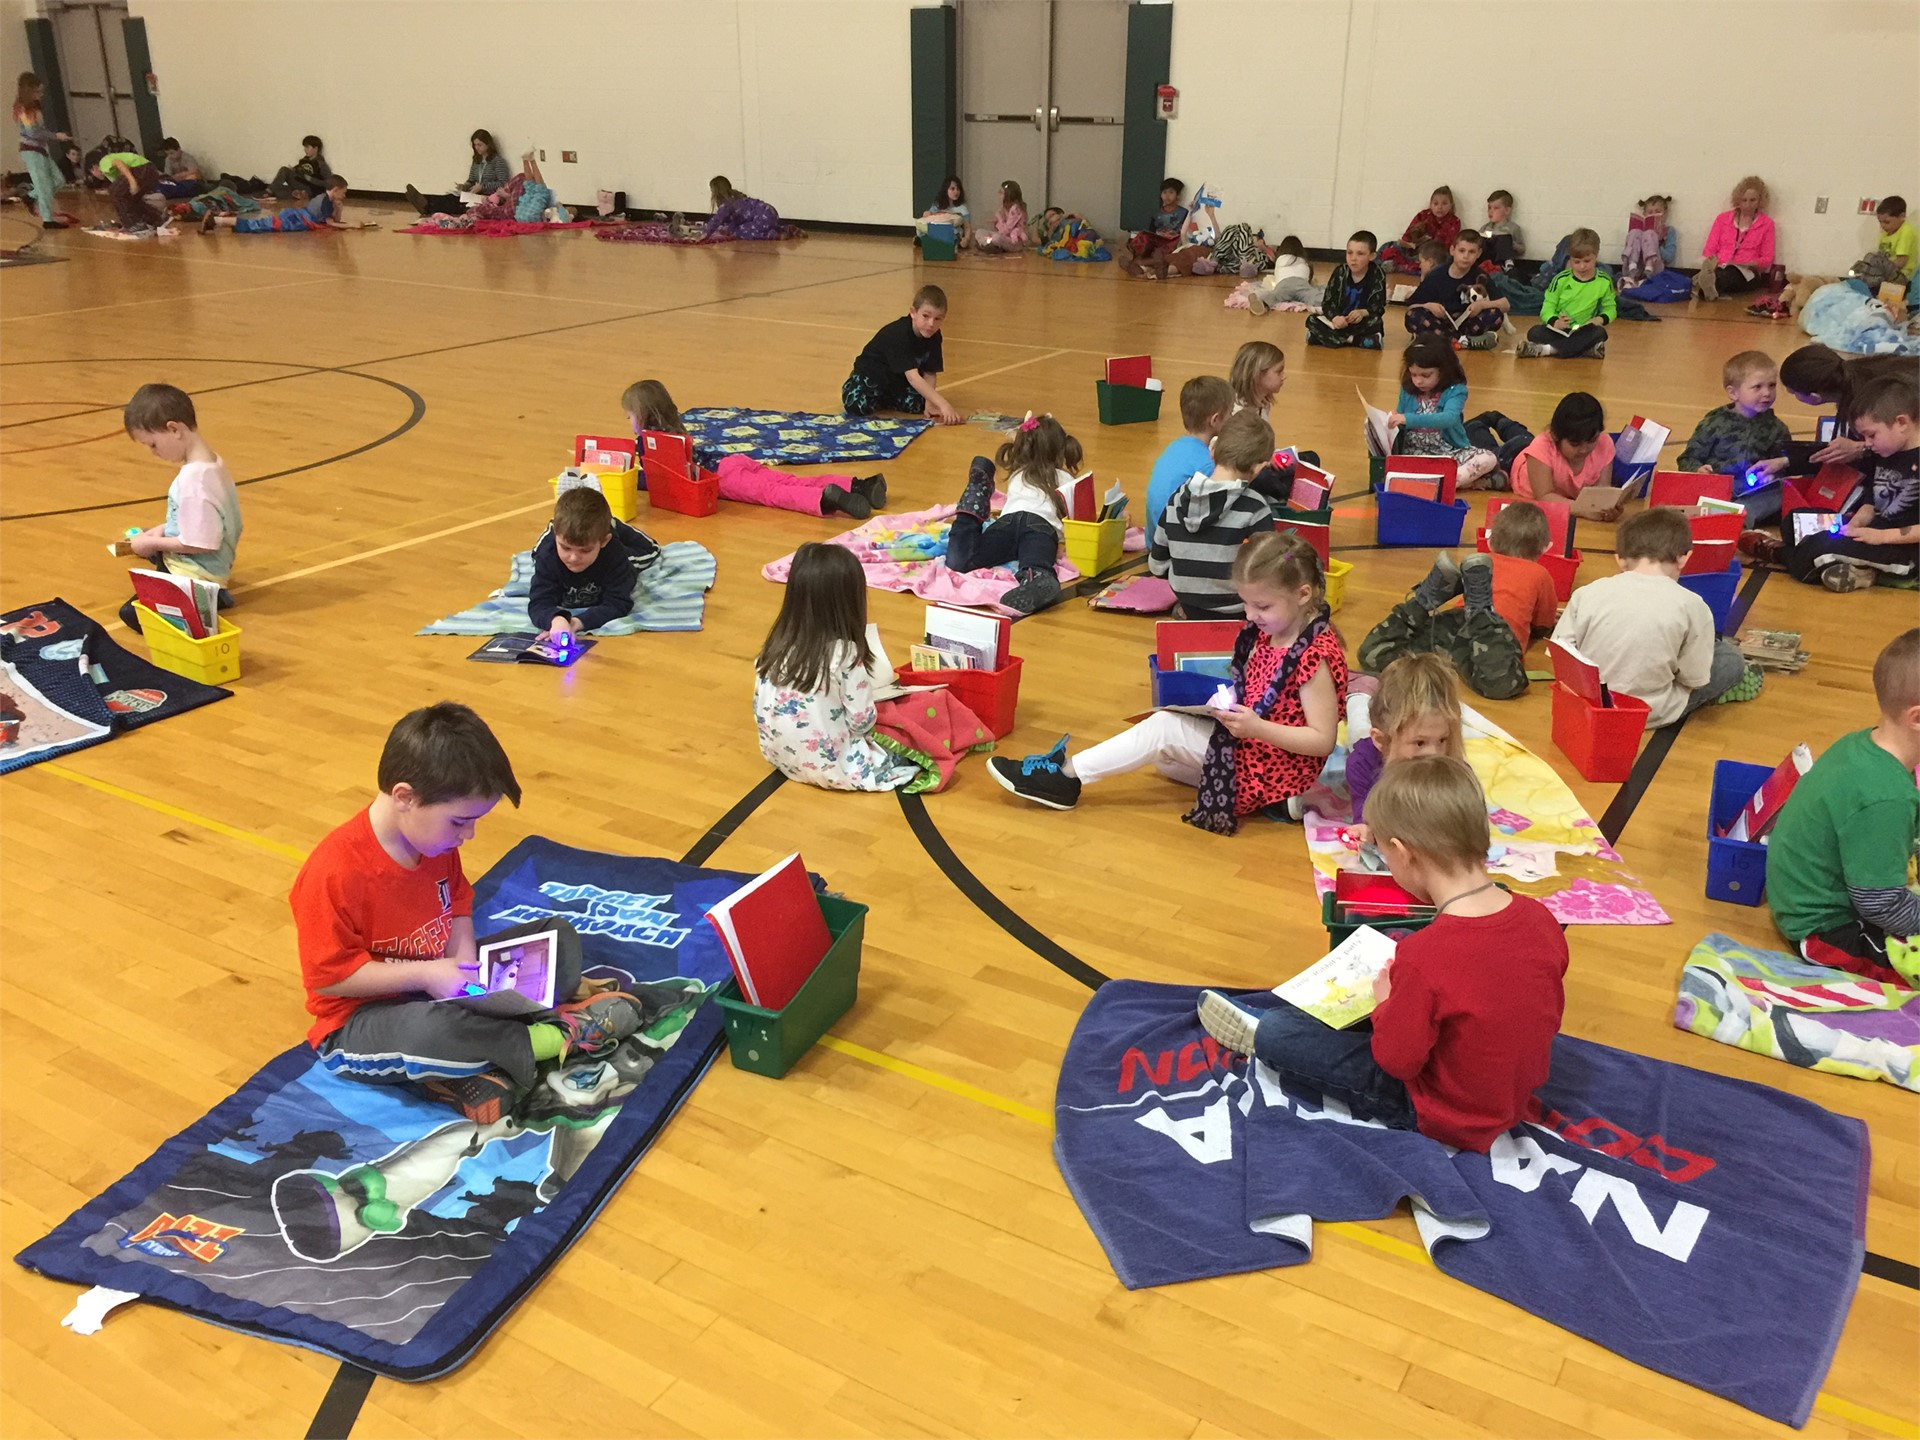 Students reading on their comfortable mats